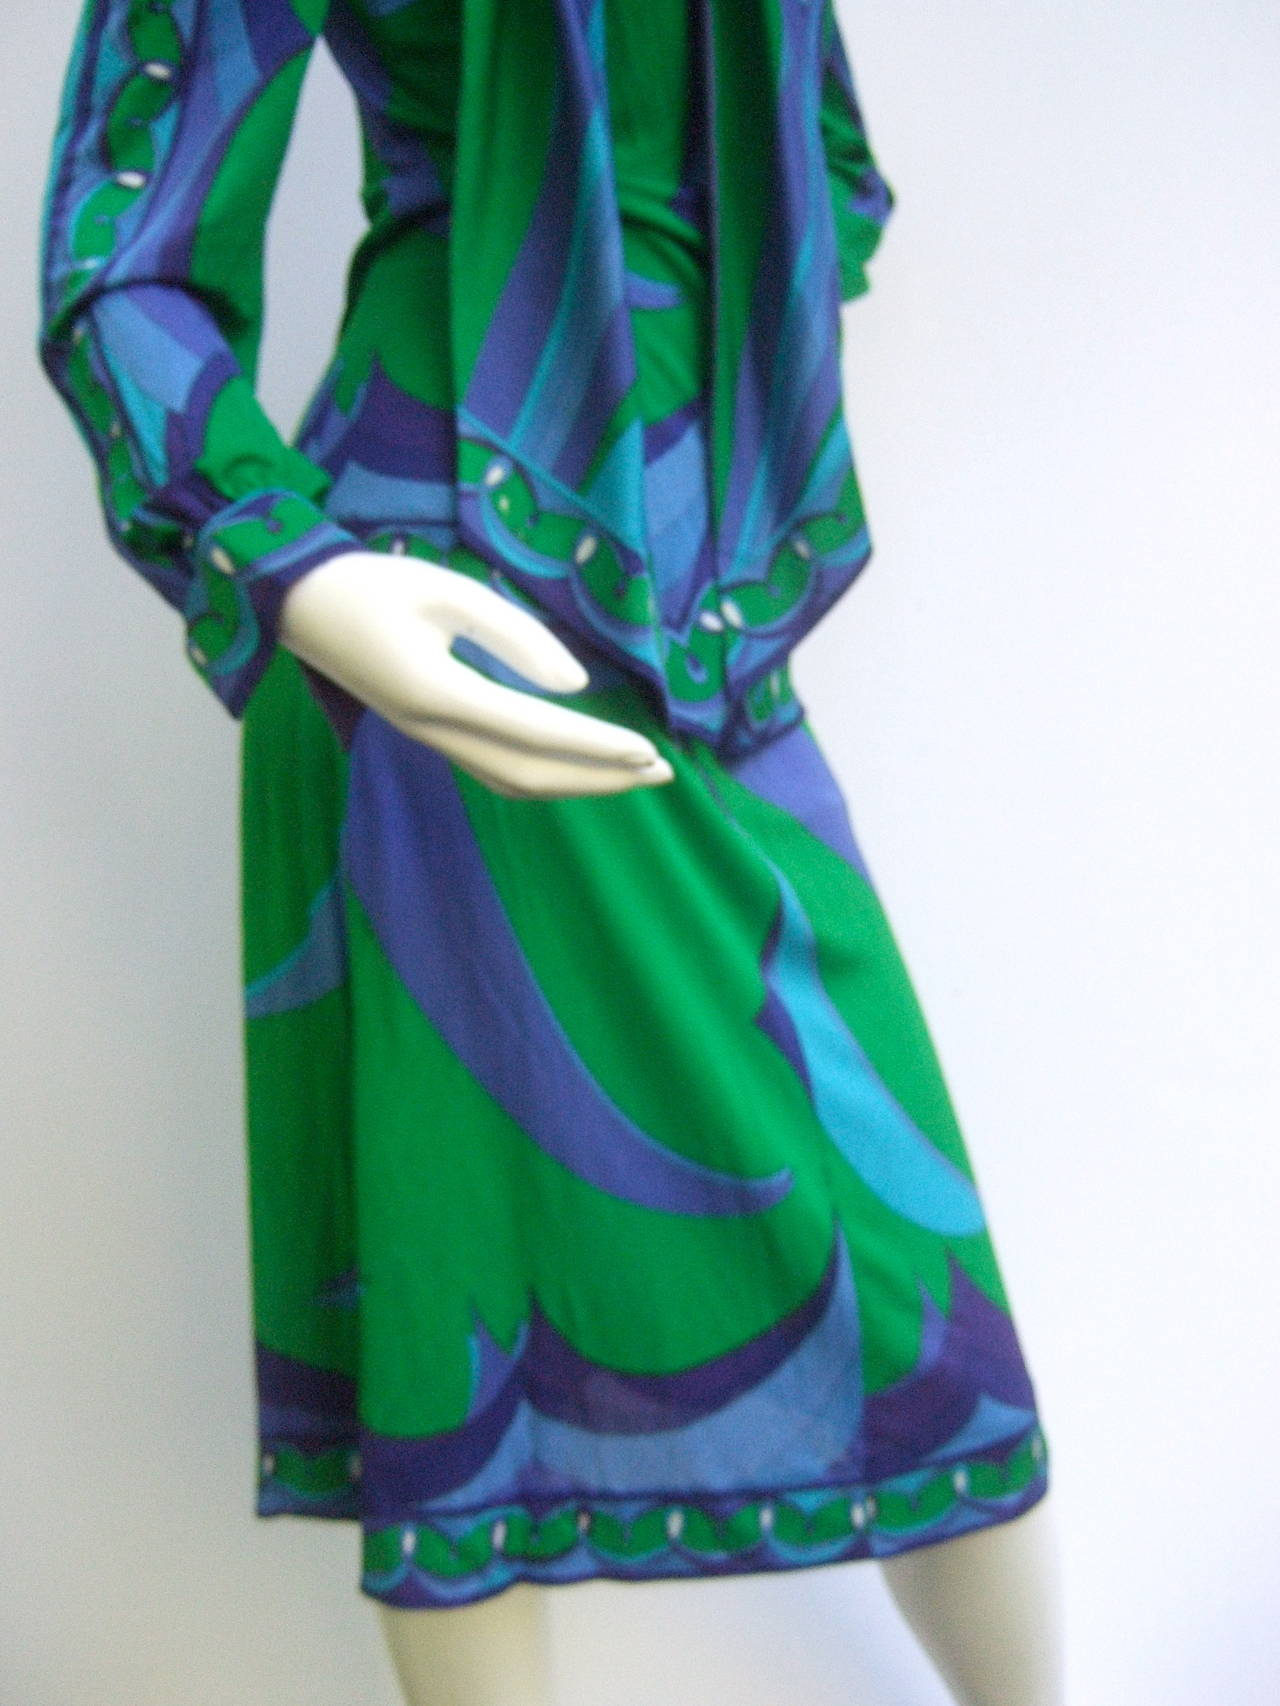 EMILIO PUCCI Silk Jersey Blend Blouse & Skirt Set c 1970 6